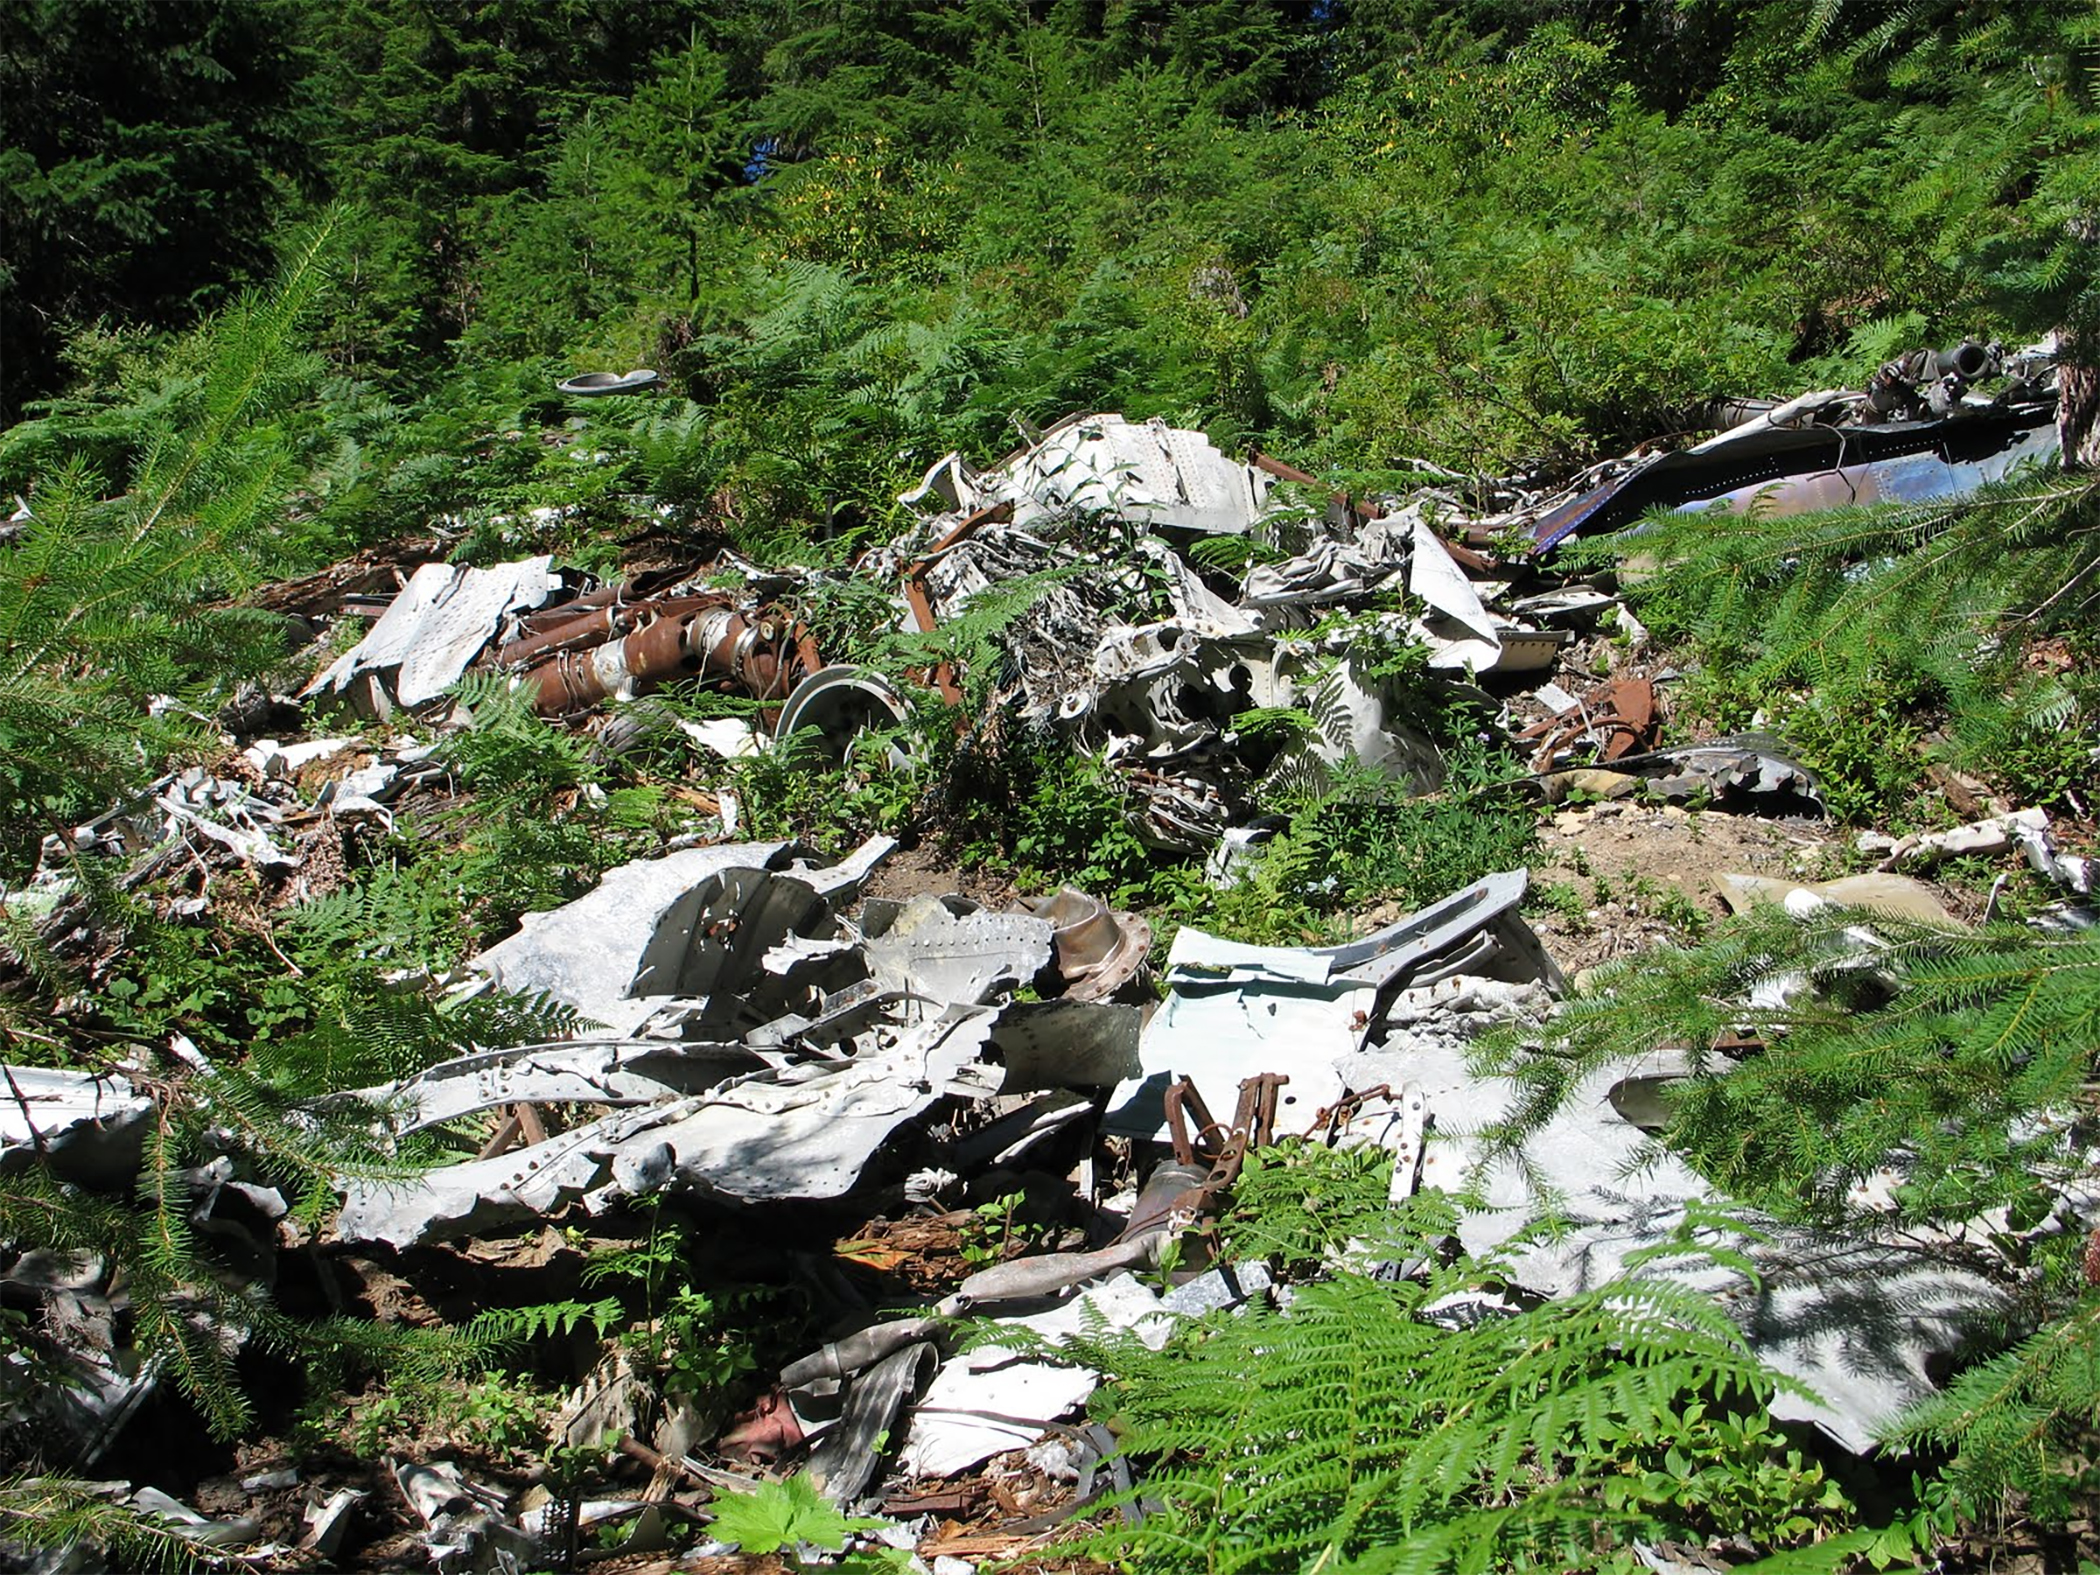 Oregon's worst plane crash is also its most mysterious | Offbeat